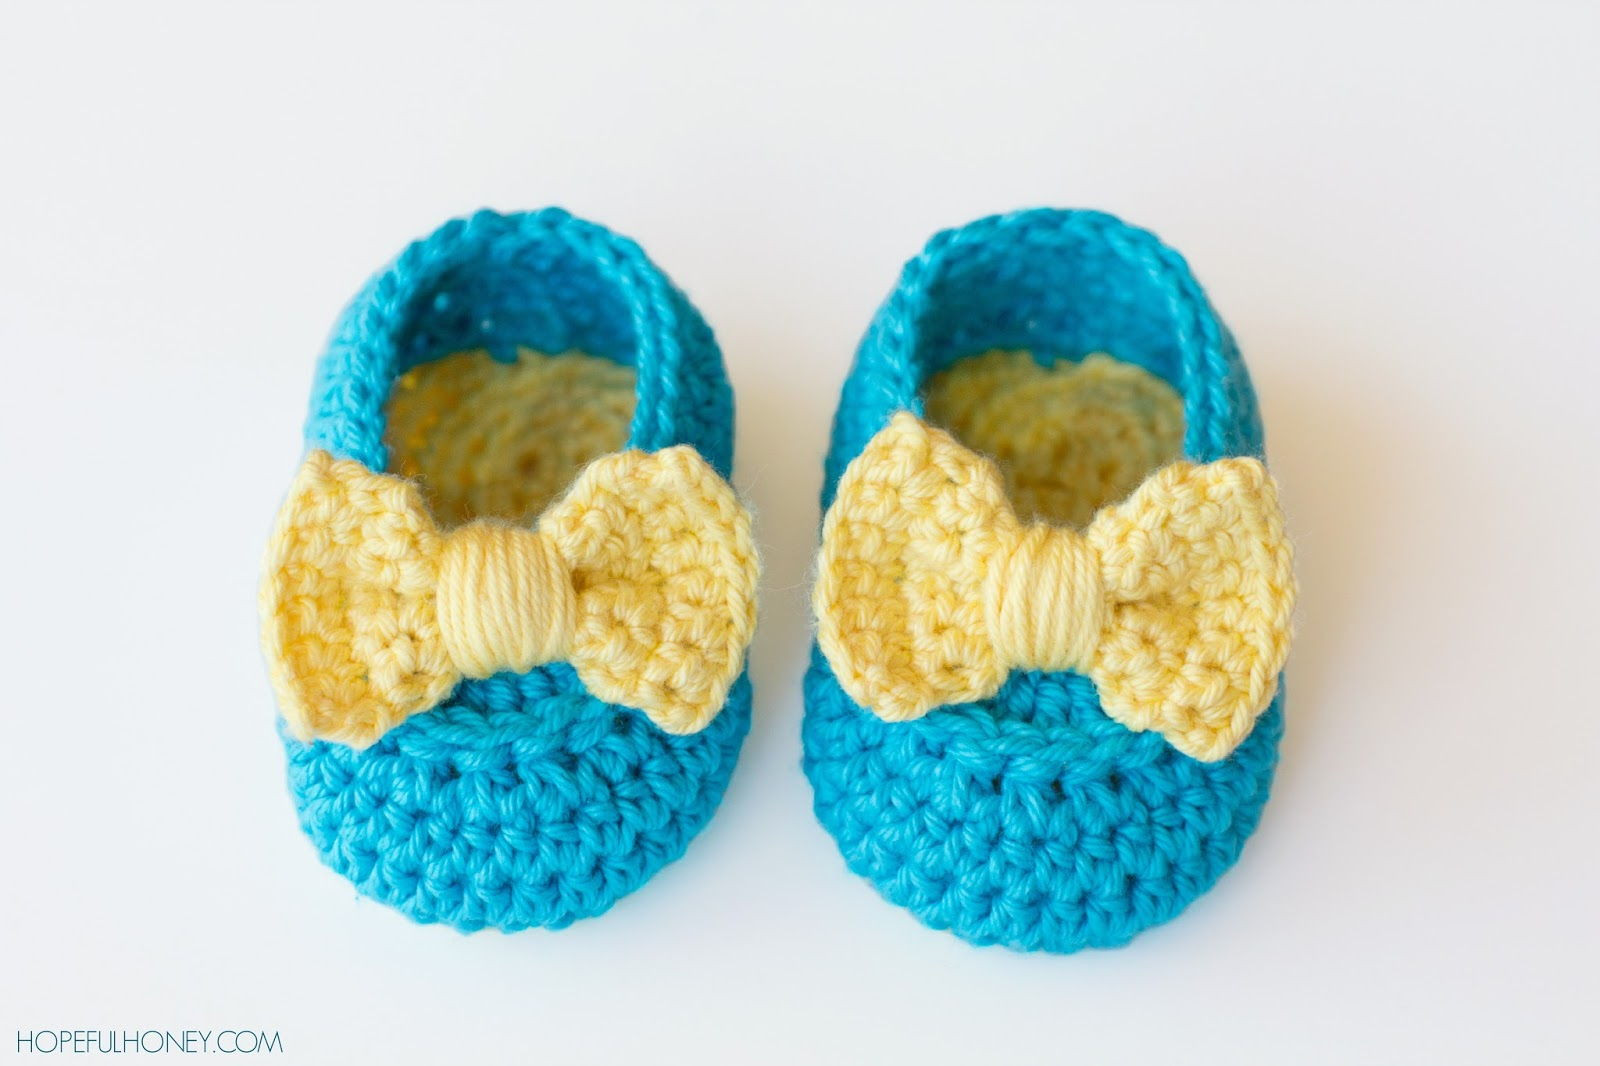 Crochet Baby Booties Inspirational 40 Adorable and Free Crochet Baby Booties Patterns Of Crochet Baby Booties Fresh Crochet Baby Mary Jane Booties Free Patterns